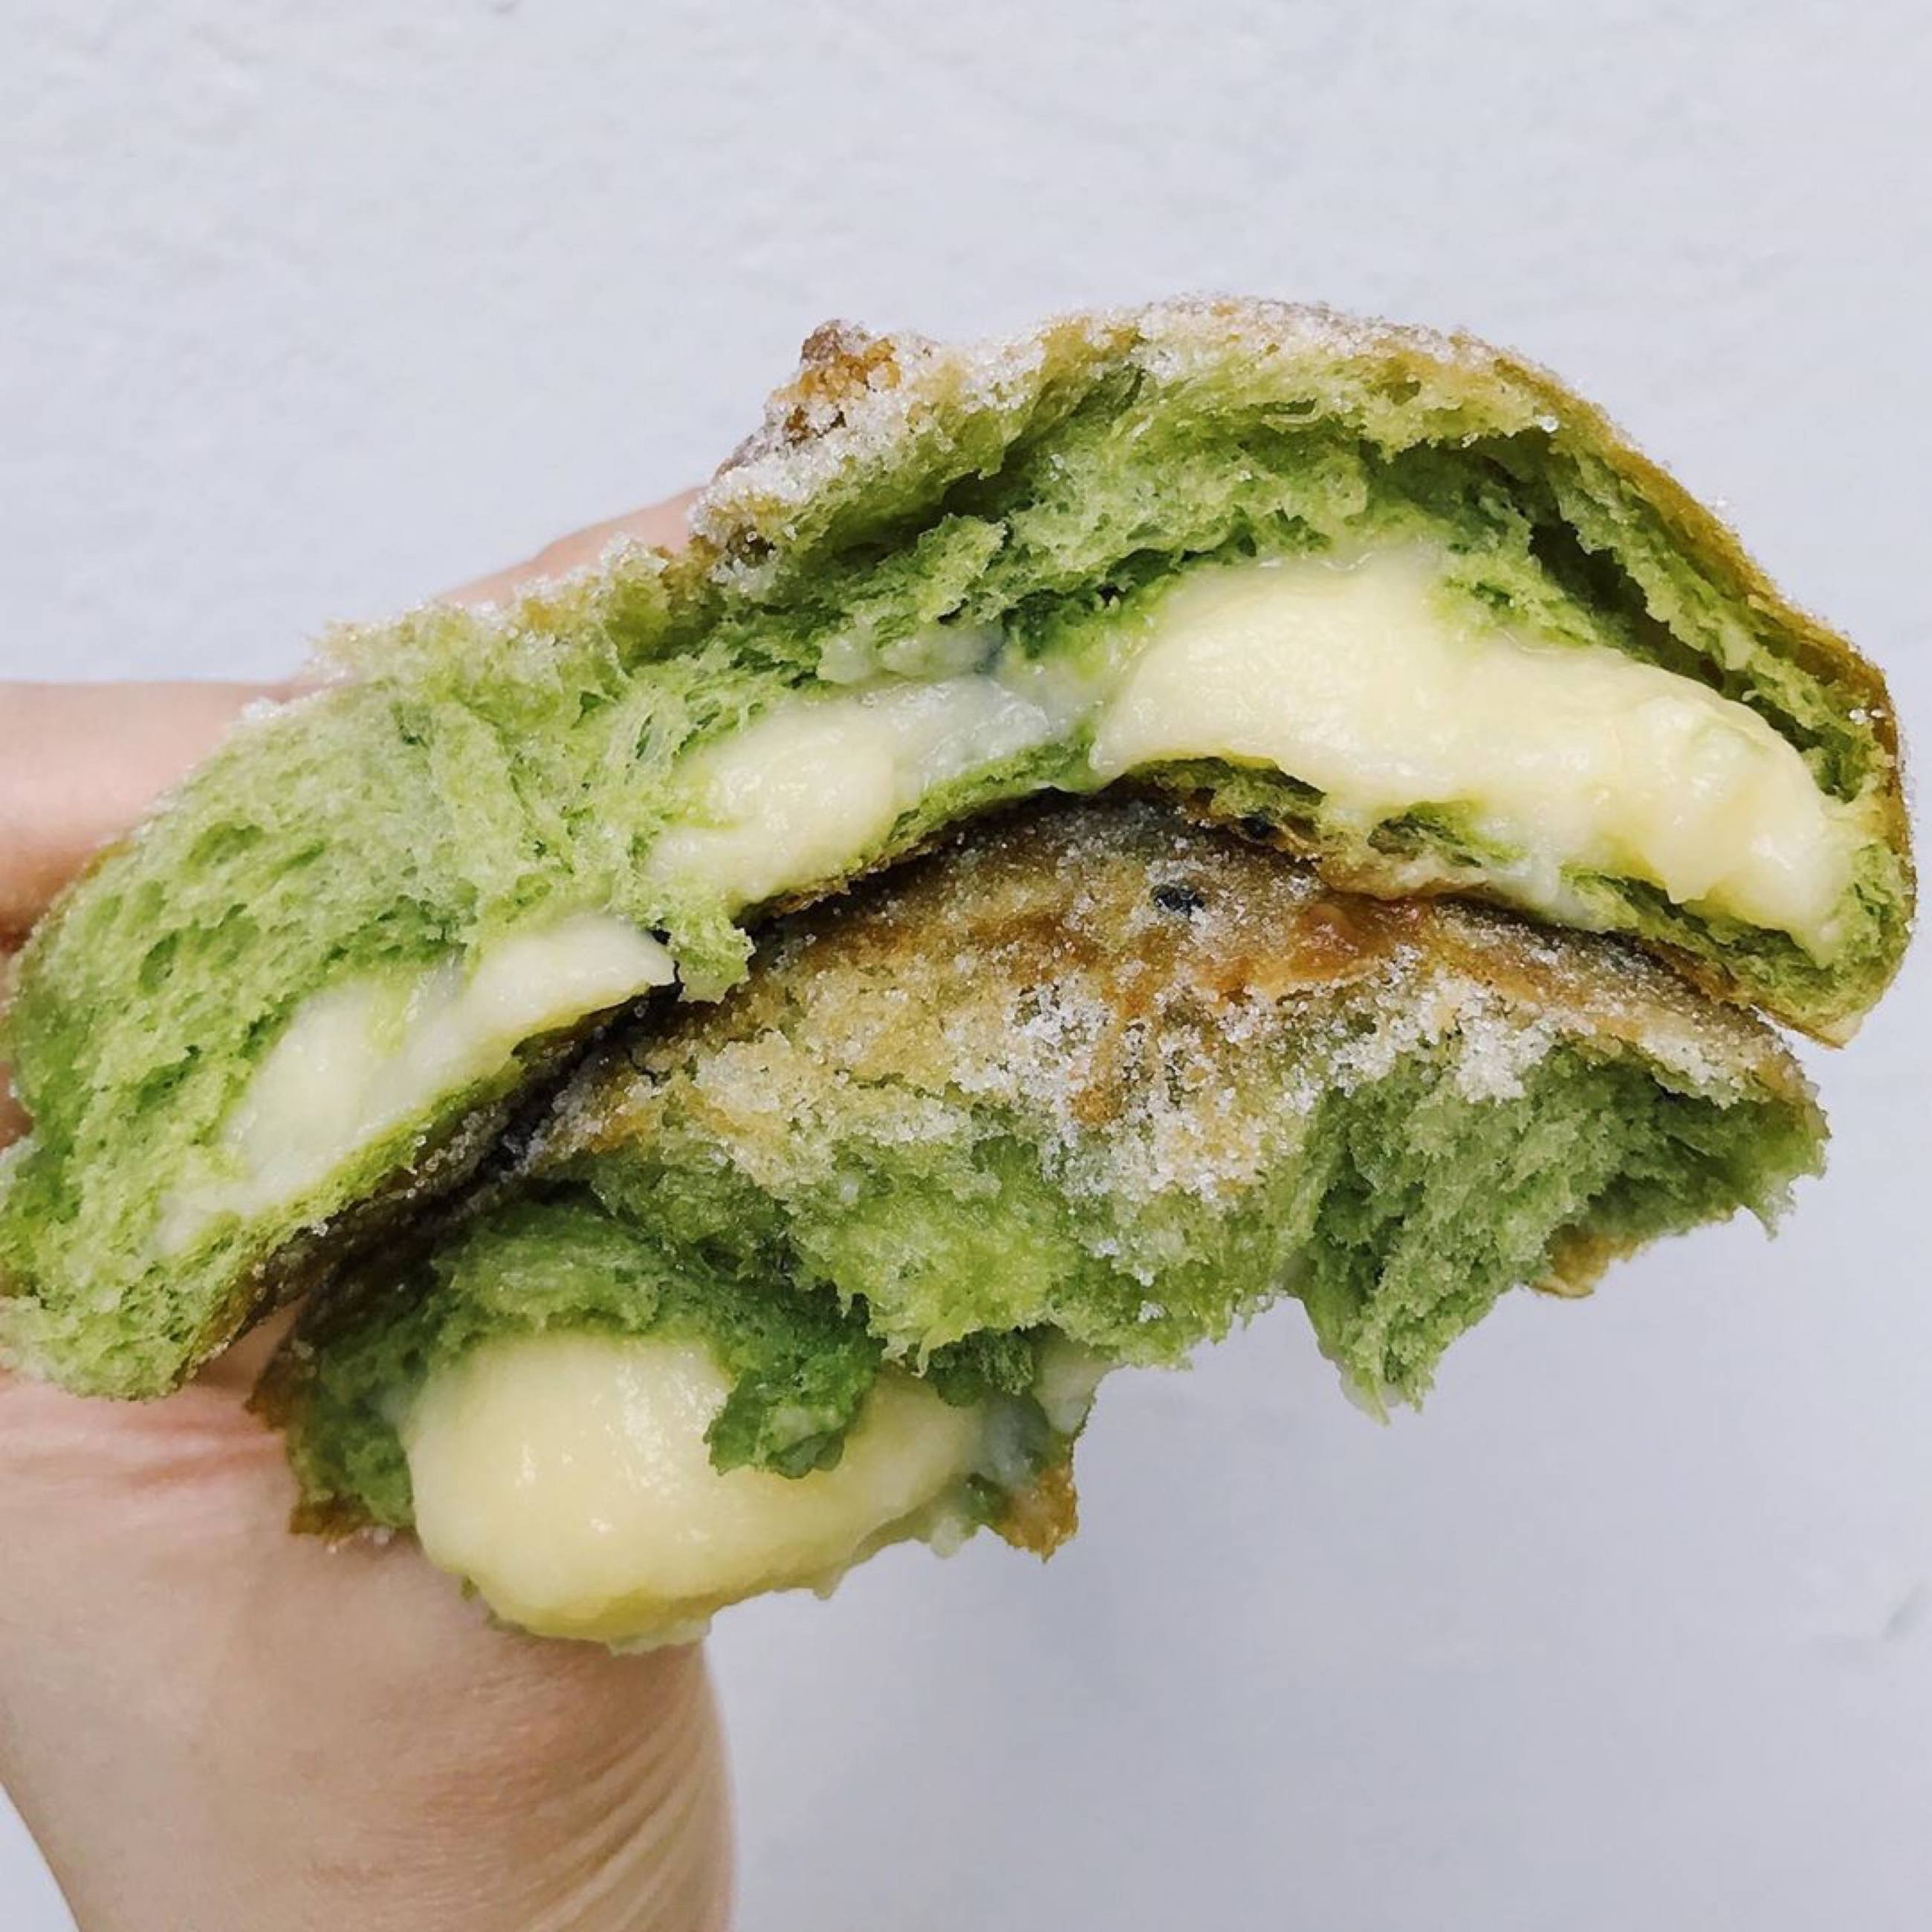 Matcha Donut at Cafe Dulce in Little Tokyo